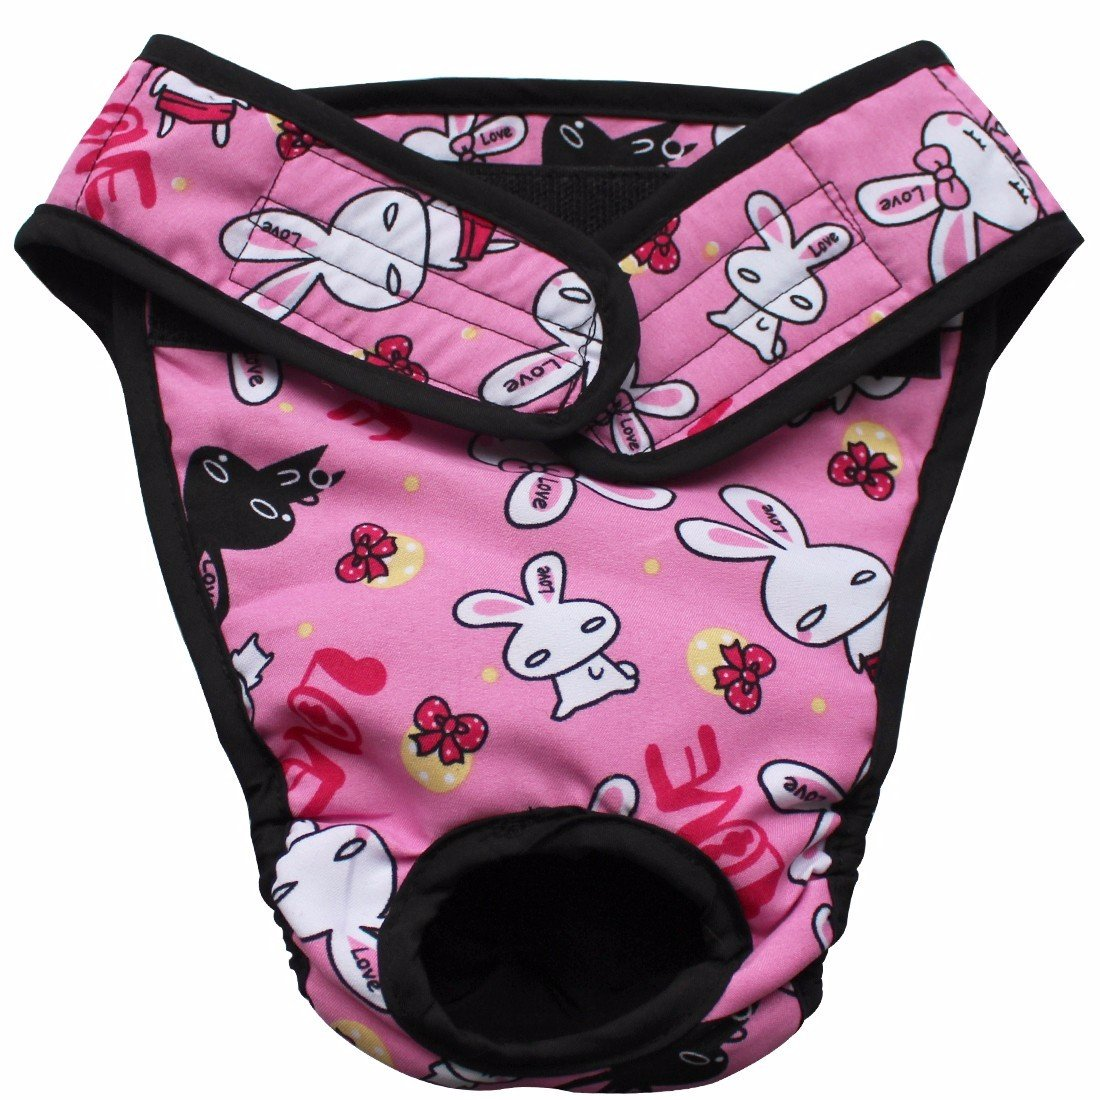 FEESHOW Large Big Dog Breeds Reusable Washable Diaper SZ S-XL Pink Large